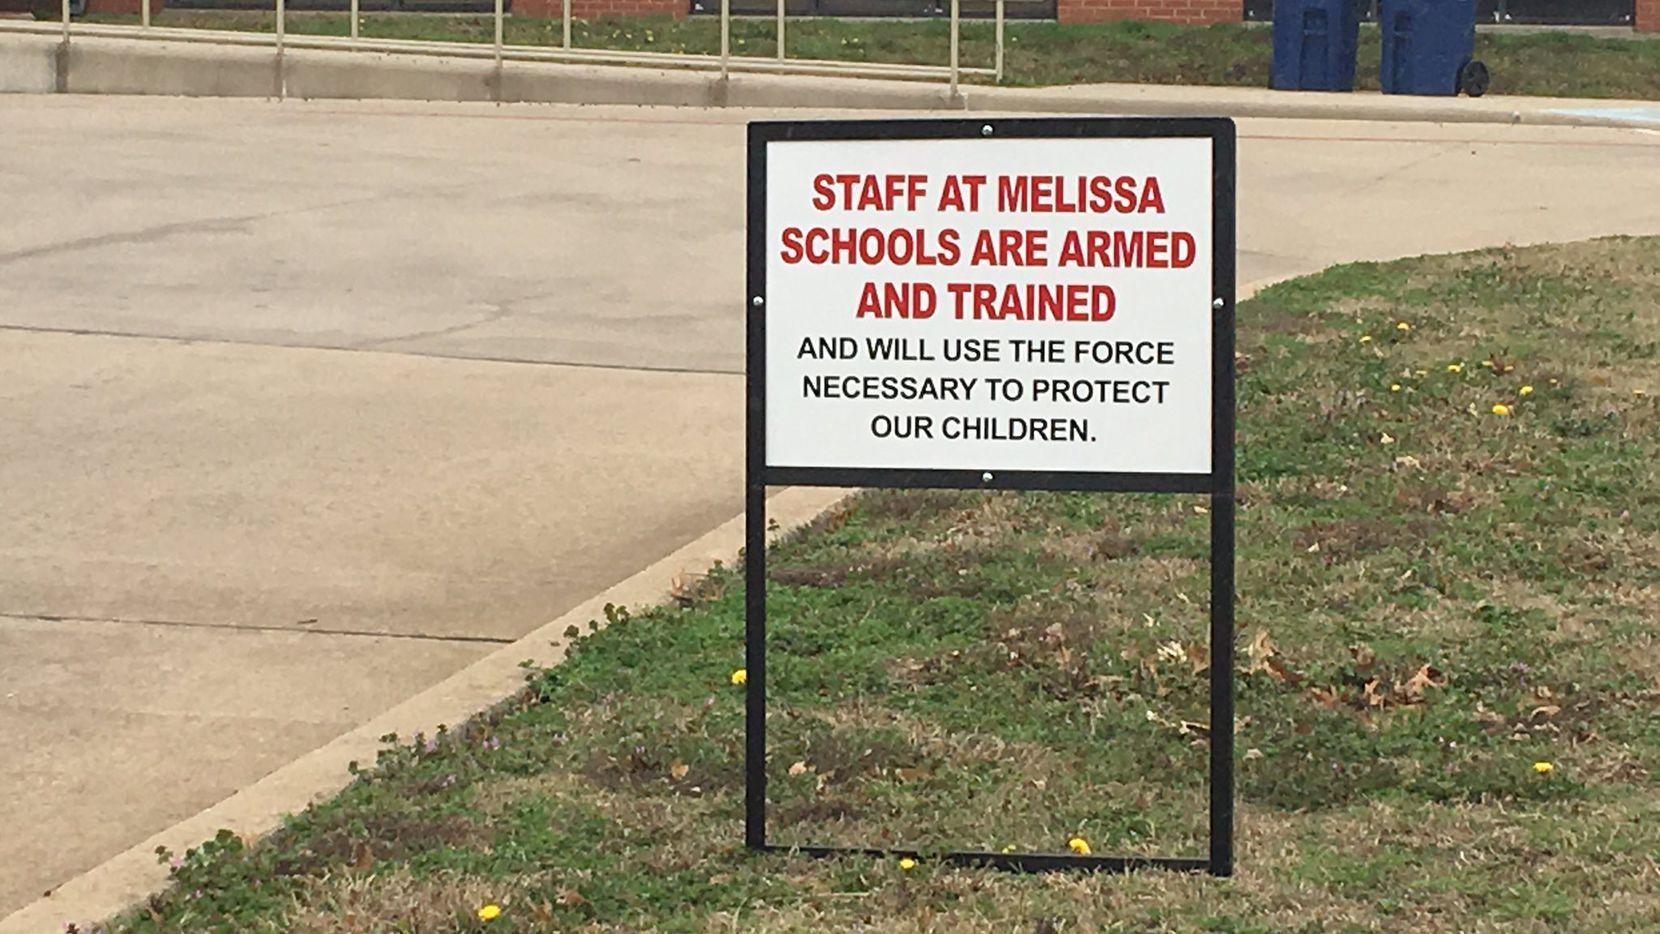 Melissa ISD signs placed outside schools warn staff is armed and trained.